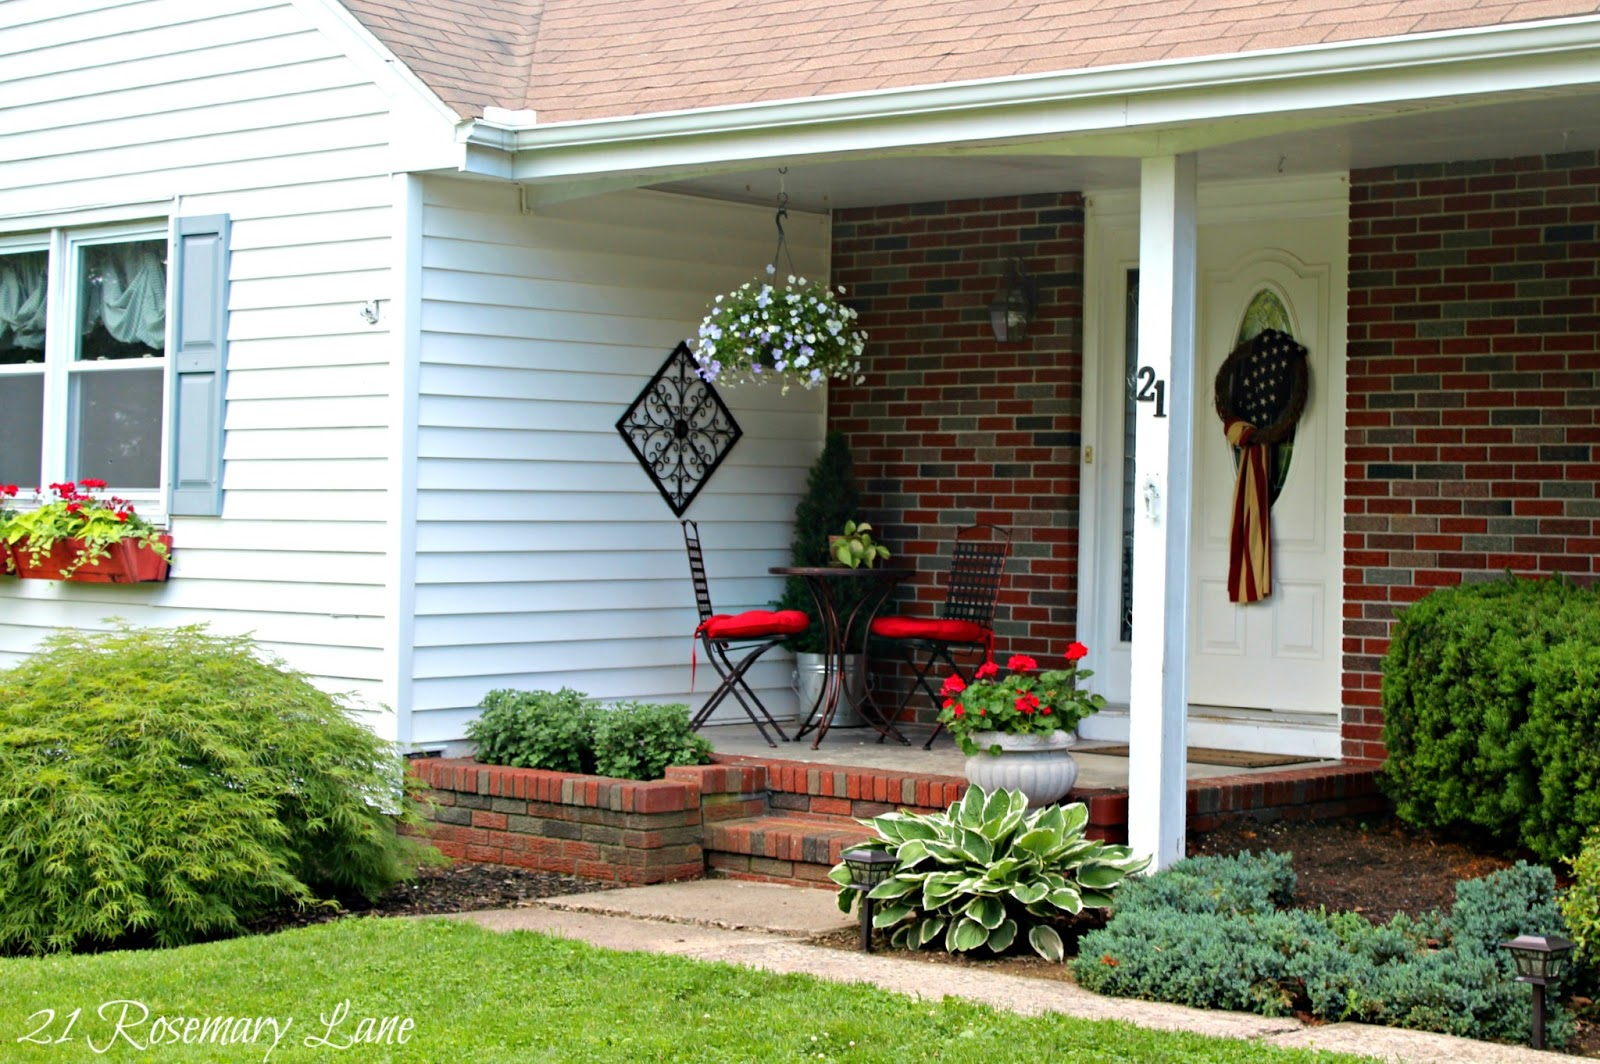 Popular 21 Rosemary Lane: Front Porch Revival ~ How I Prettied it Up! RS64